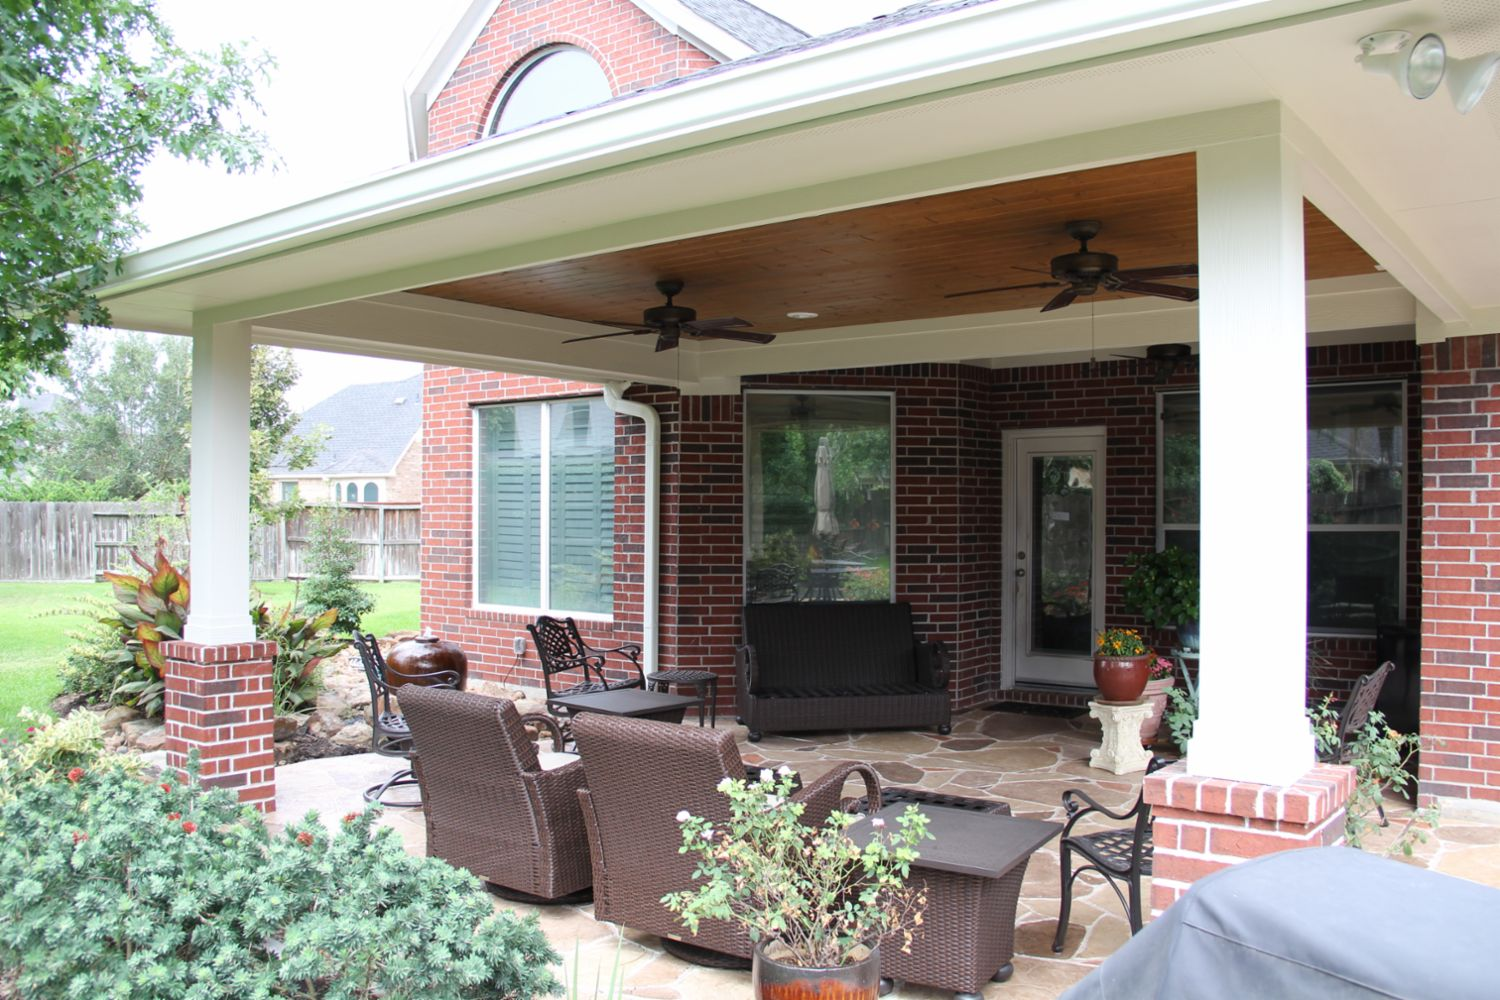 Patio Covers, Outdoor Kitchens, Fire Features In Katy, TX   Tradition  Outdoor Living, LLC